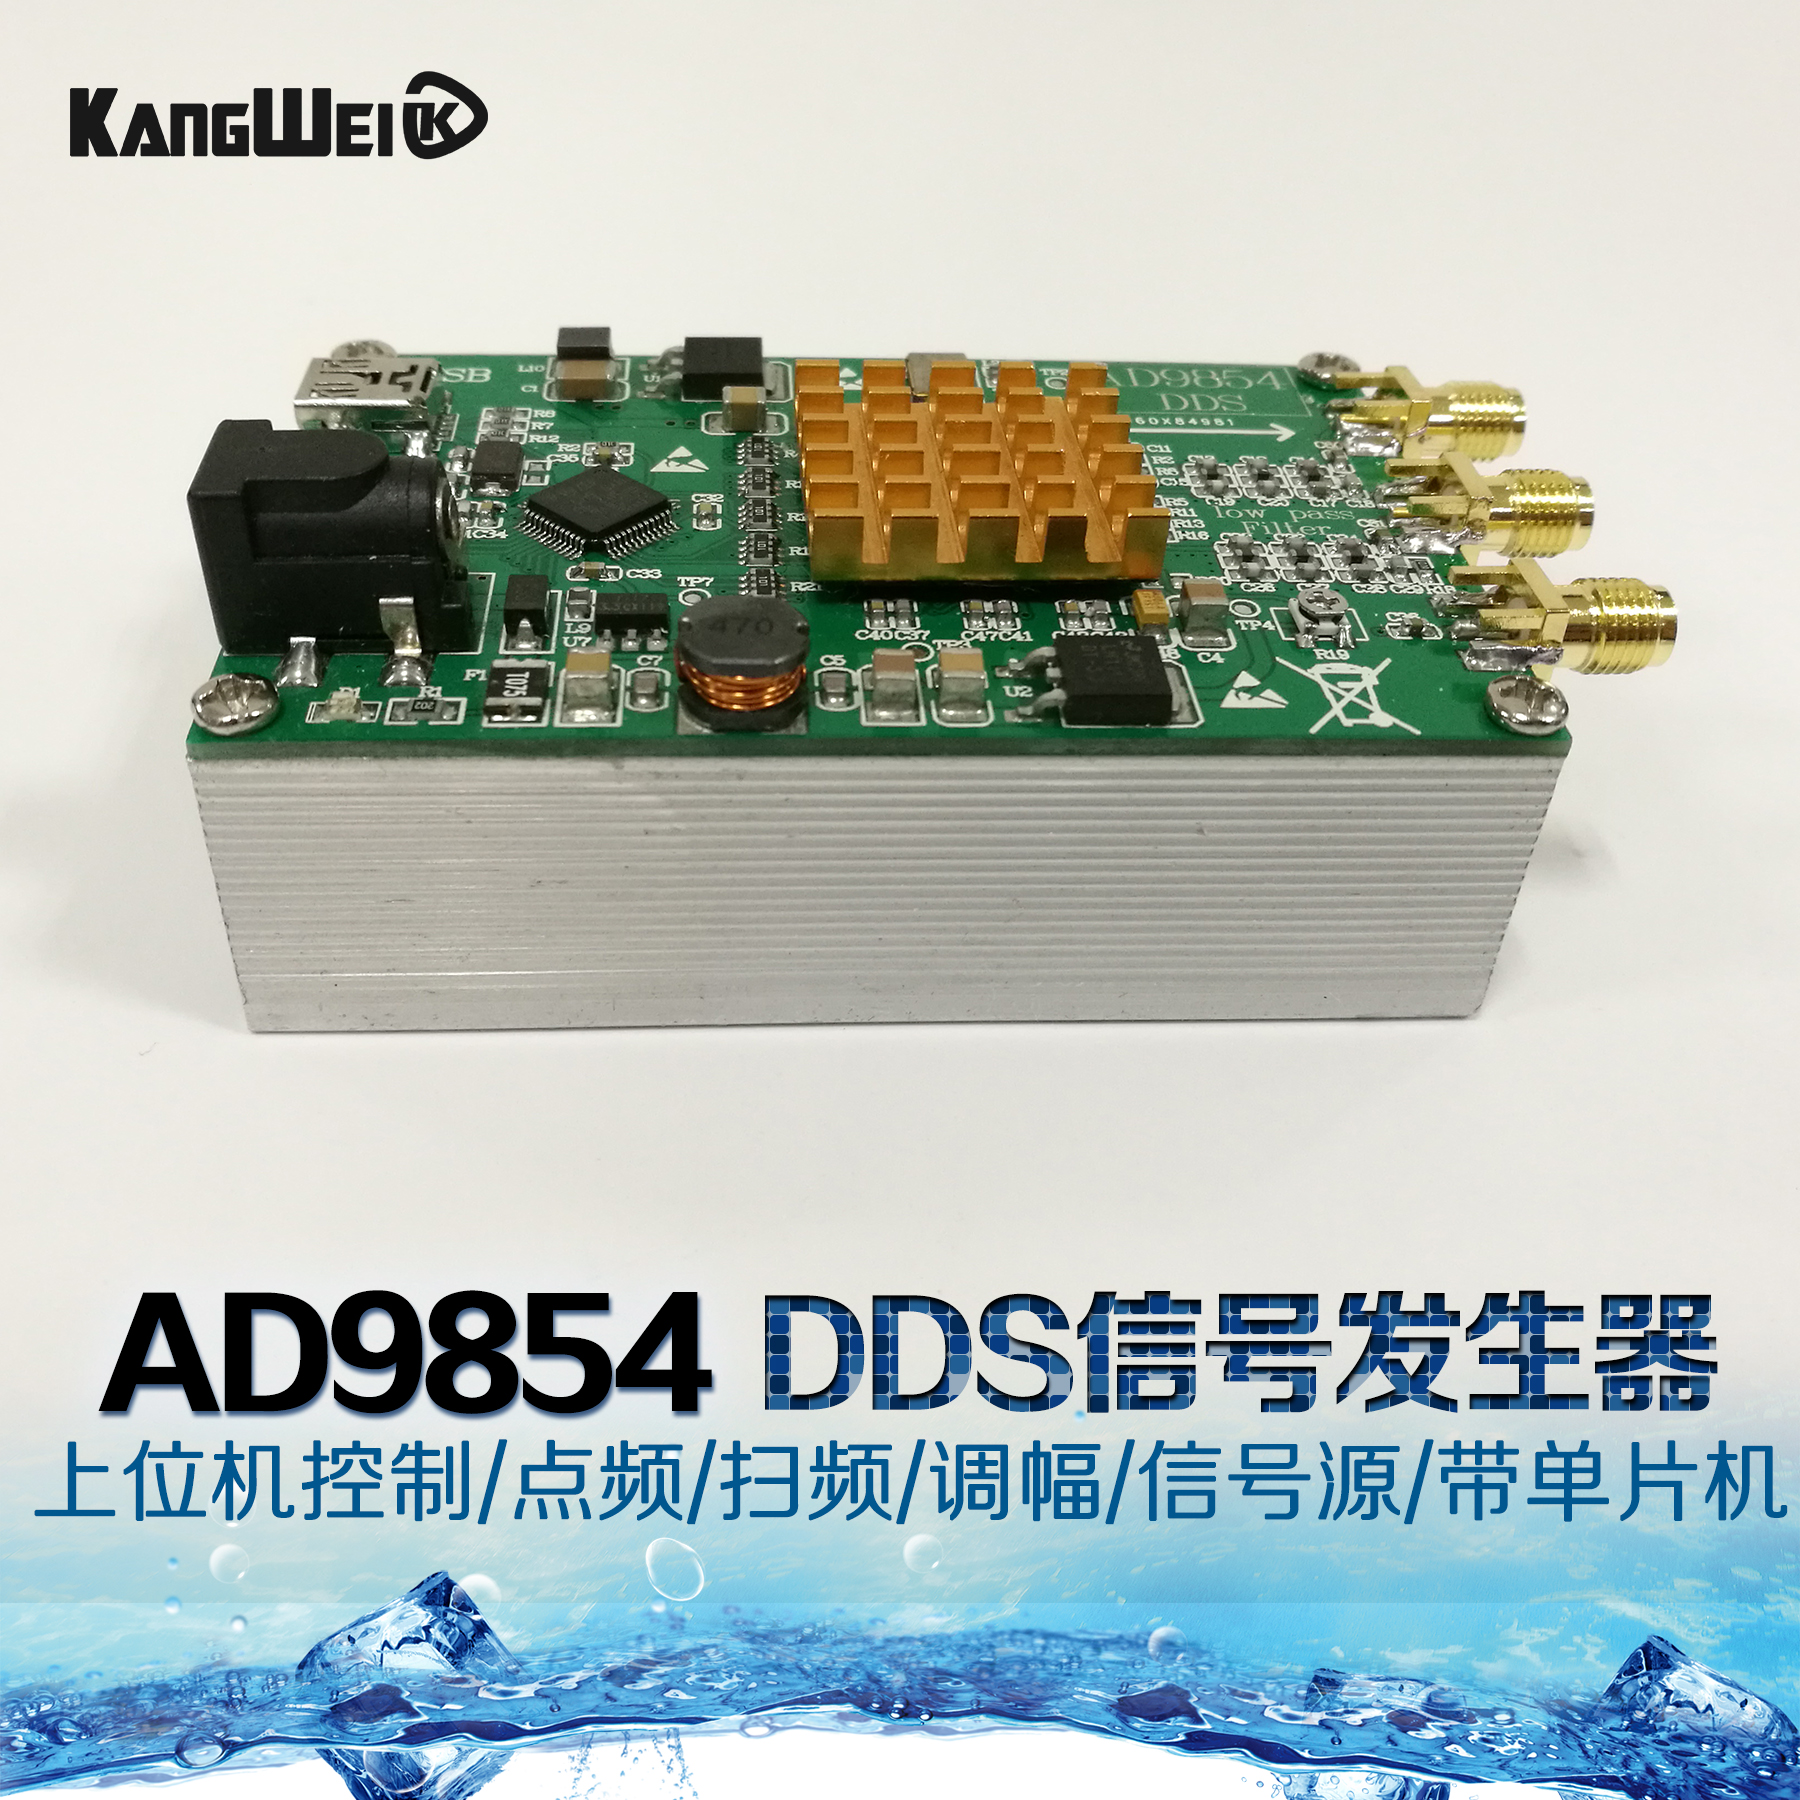 AD9854 single chip microcomputer, DDS signal generator module, upper computer frequency sweep frequency modulation signal source 7 units ipm frequency conversion velocity modulation module mubw25 12a7 25a1200v